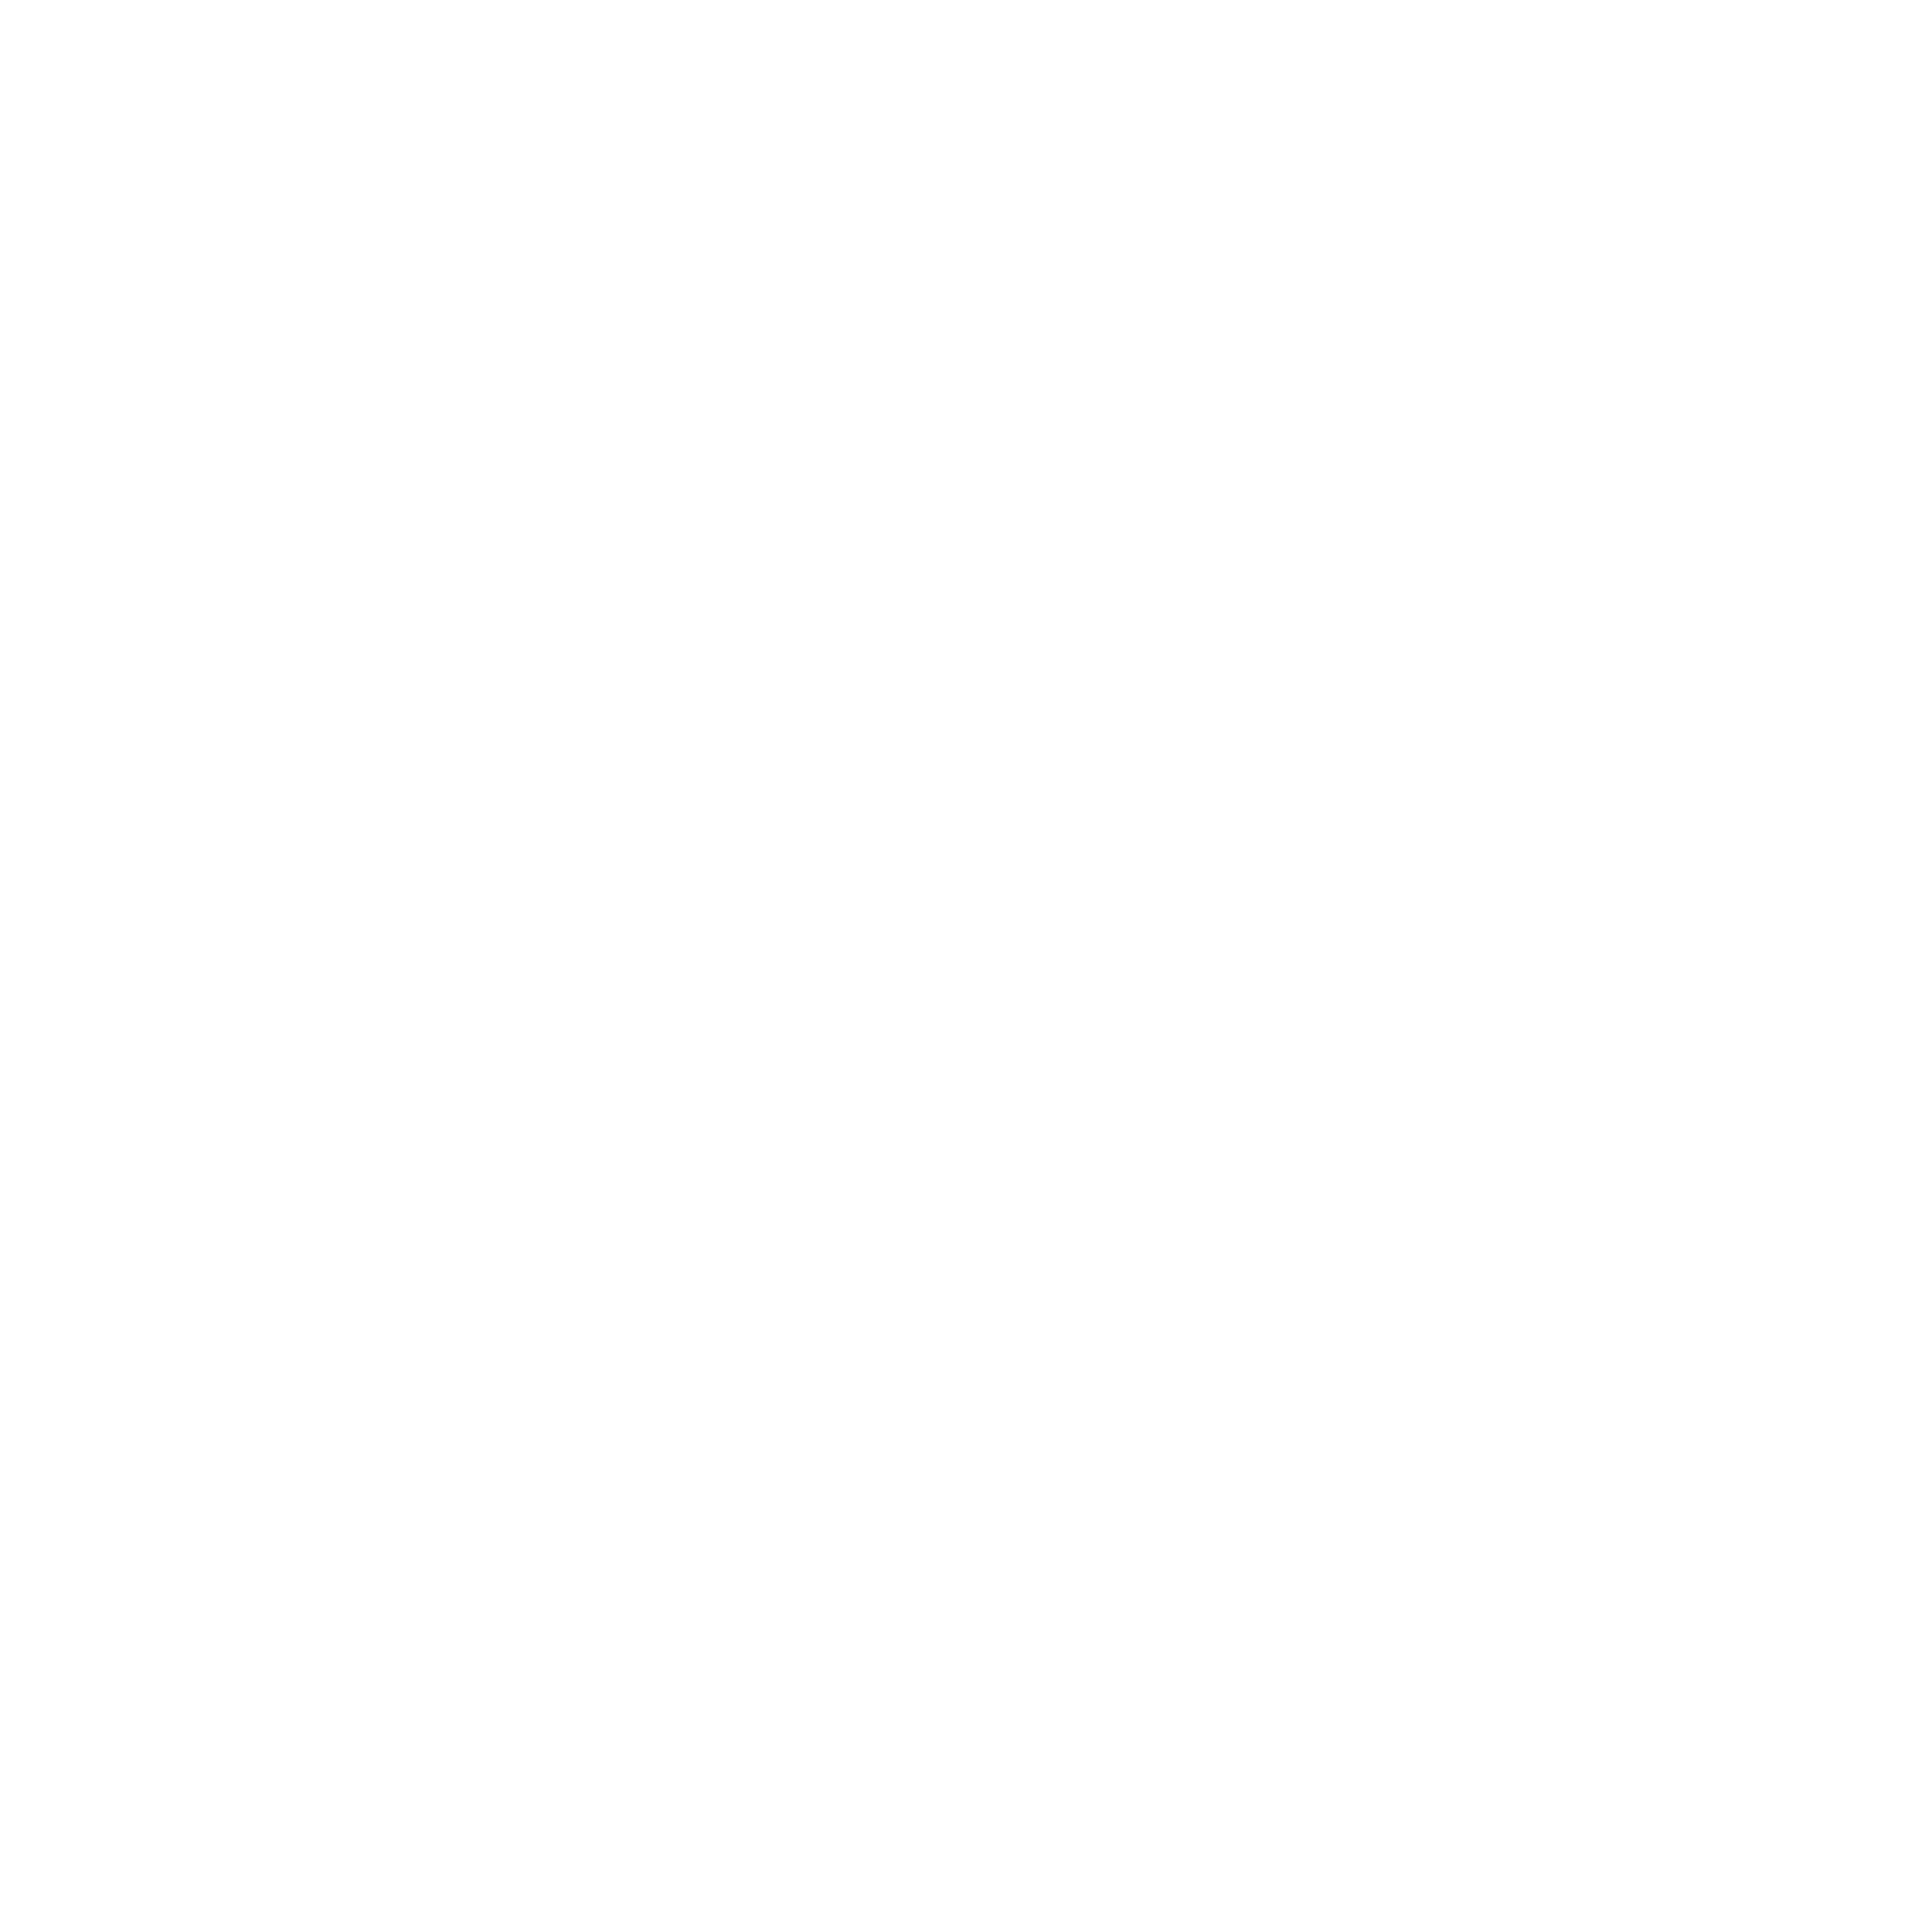 Php vector ico. Icons free in simple